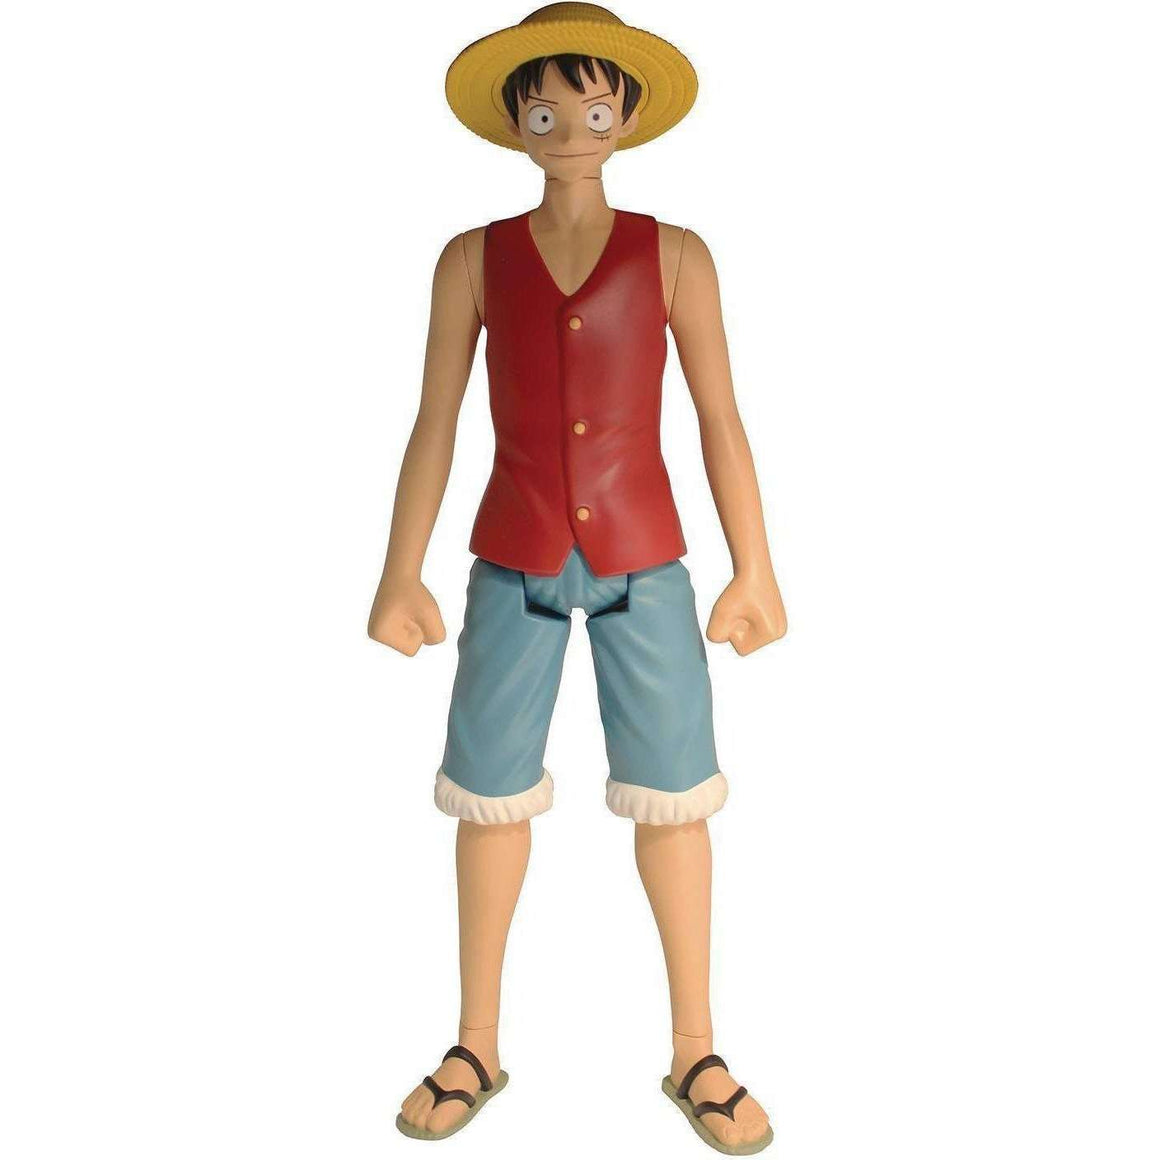 One Piece Luffy 12in Action Figure - APRIL 2019